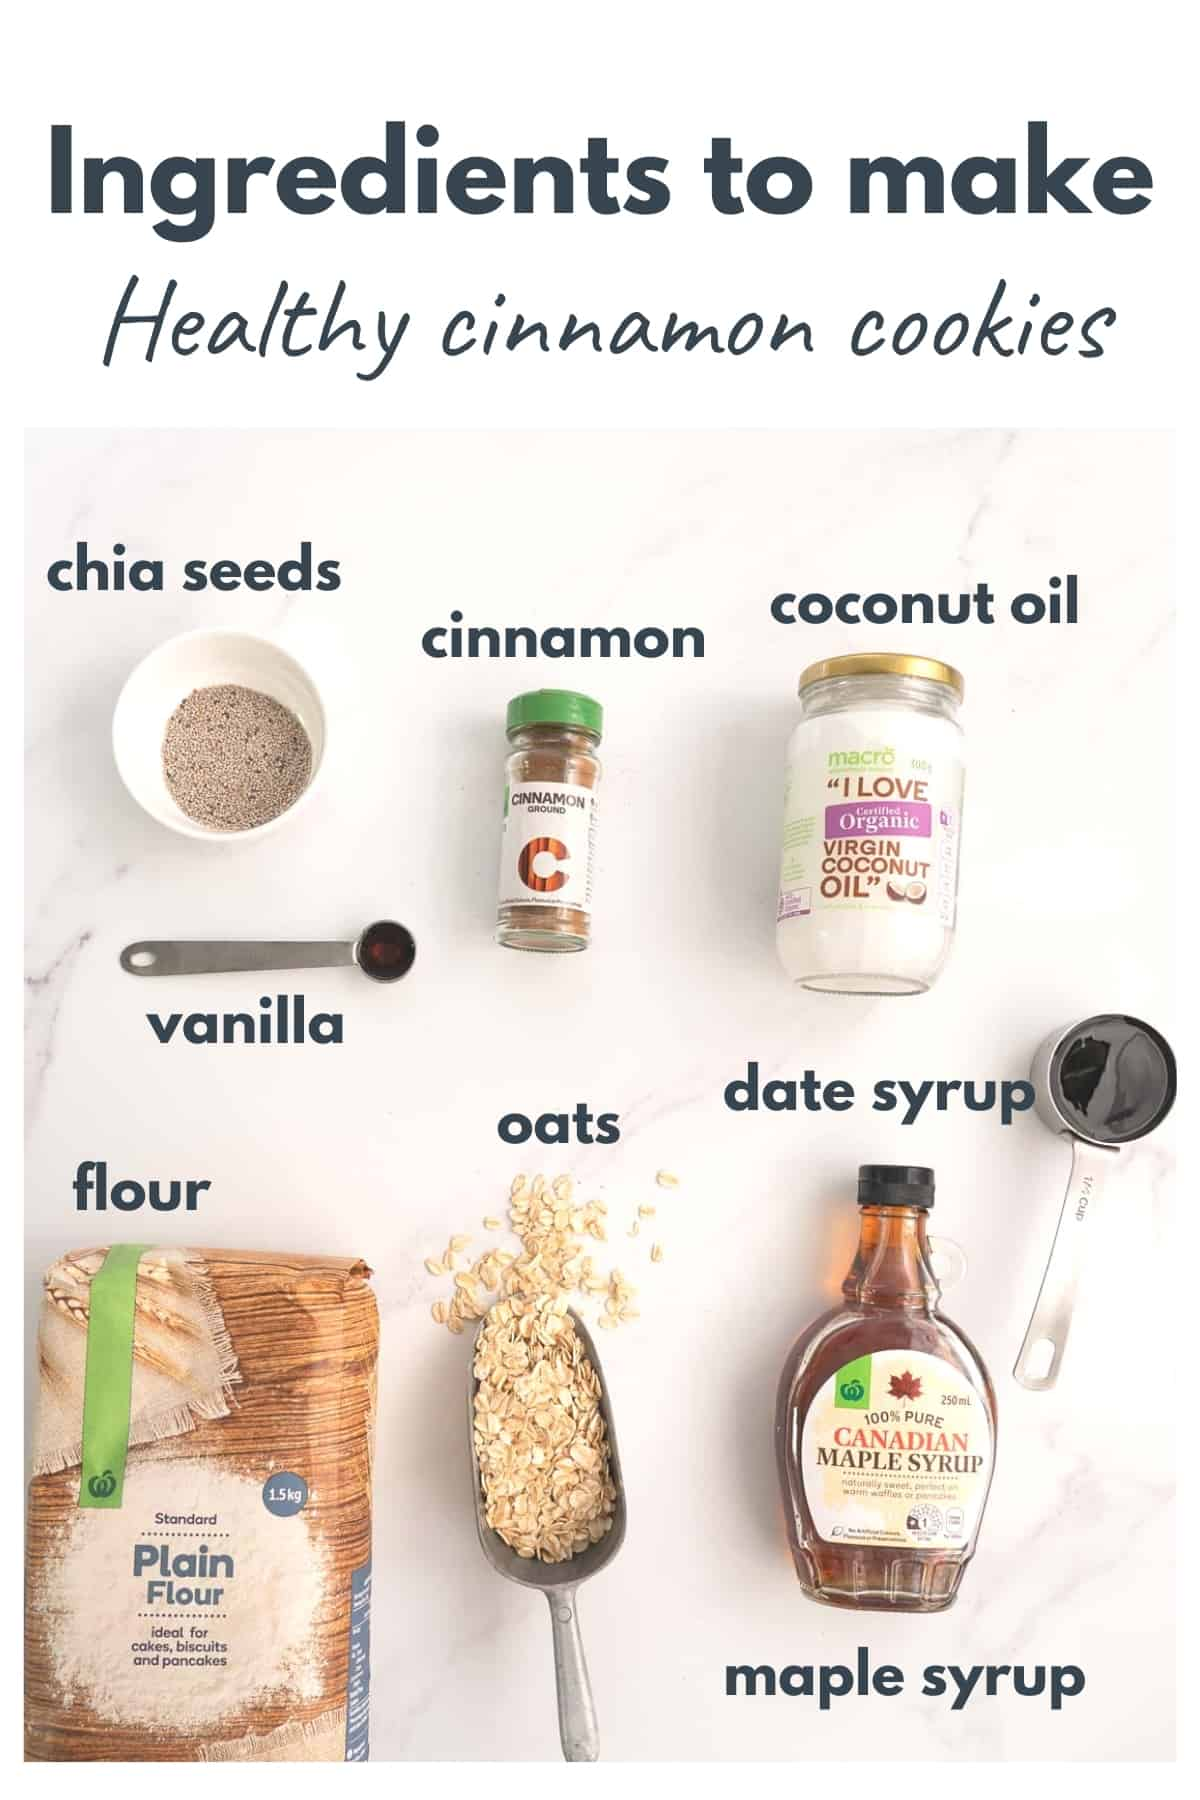 Ingredients for healthy cinnamon cookies laid out on a bench top with text overlay.